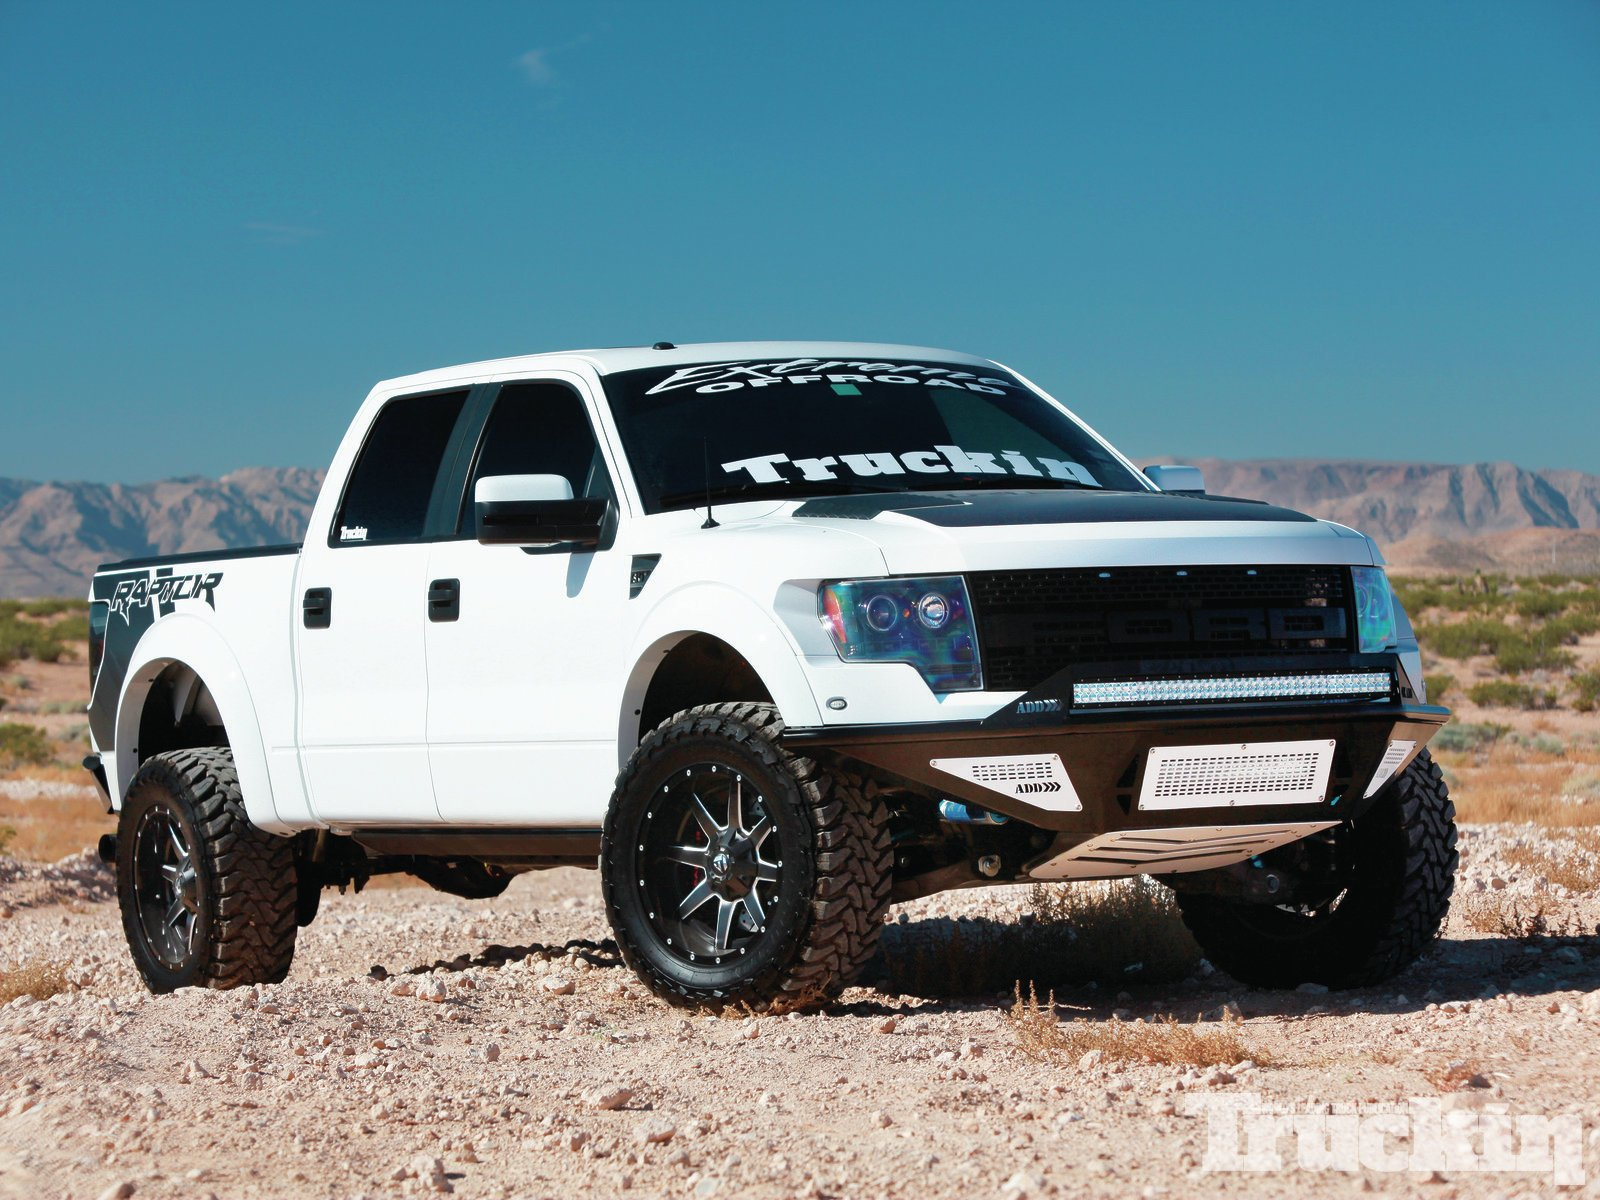 Ford Raptor IdZ6iGMI   FewMocom Cool Car Wallpaper 1600x1200